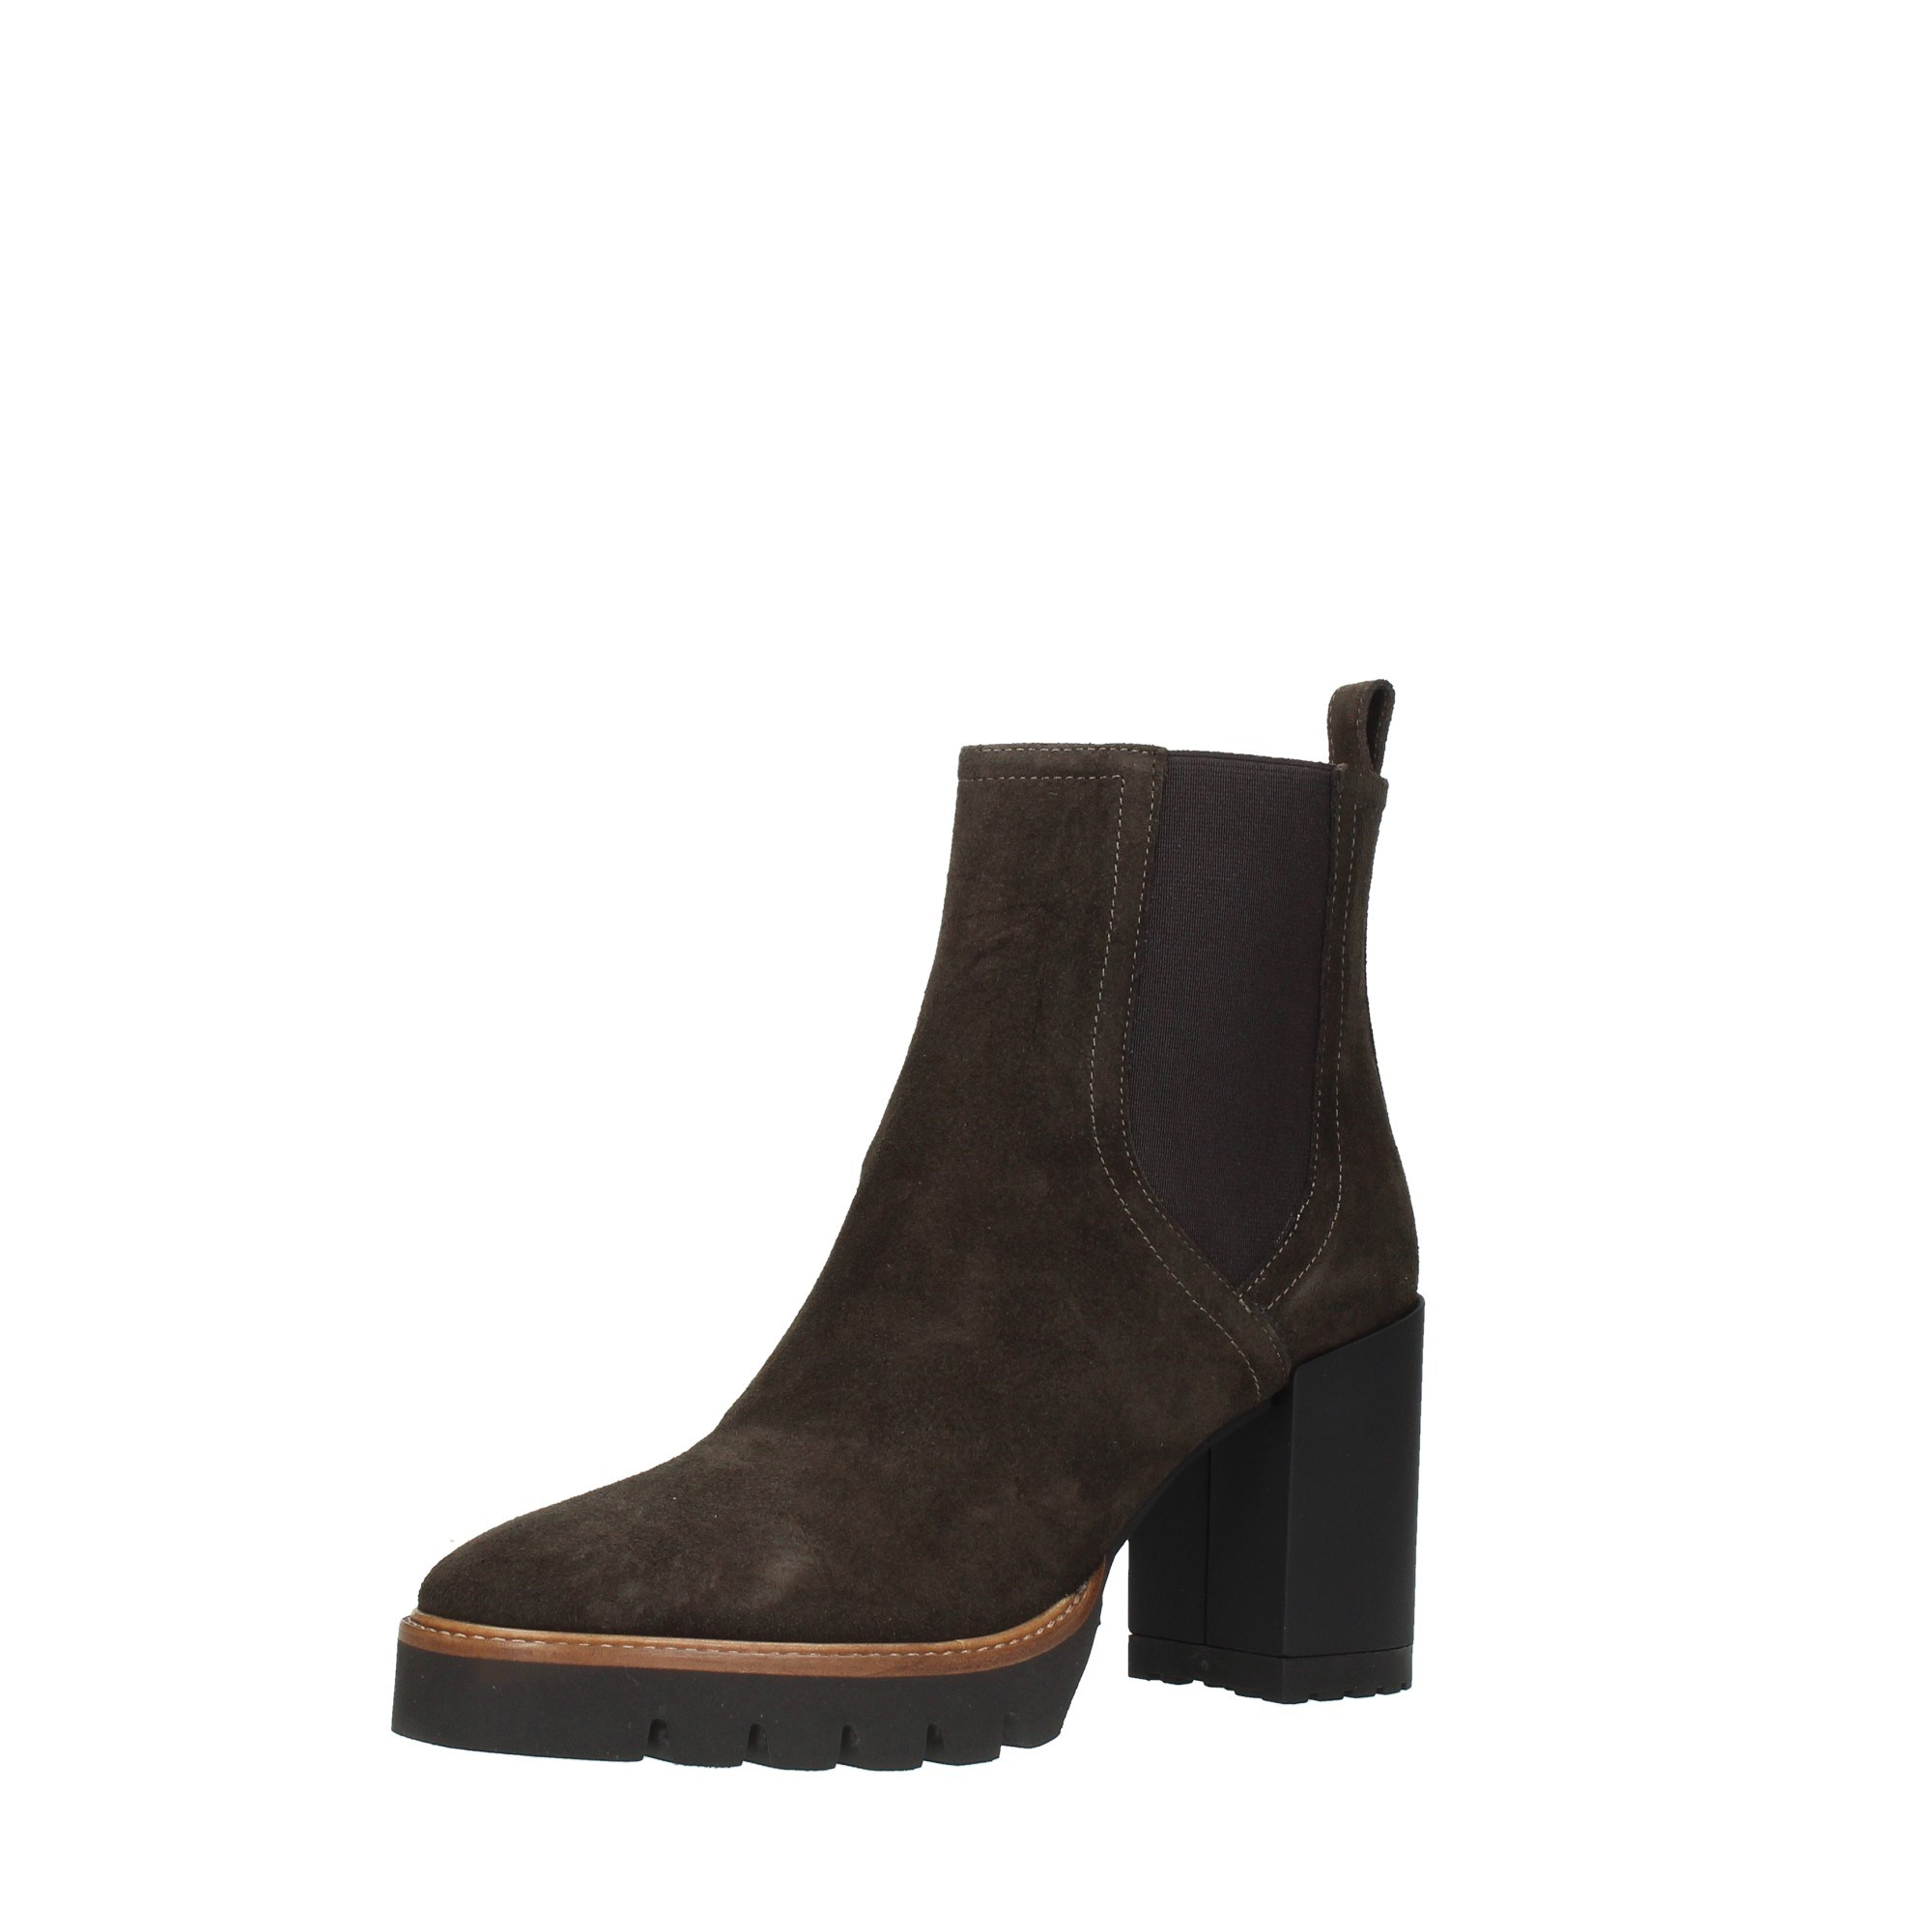 Bervicato Shoes Women Booties Brown 3811